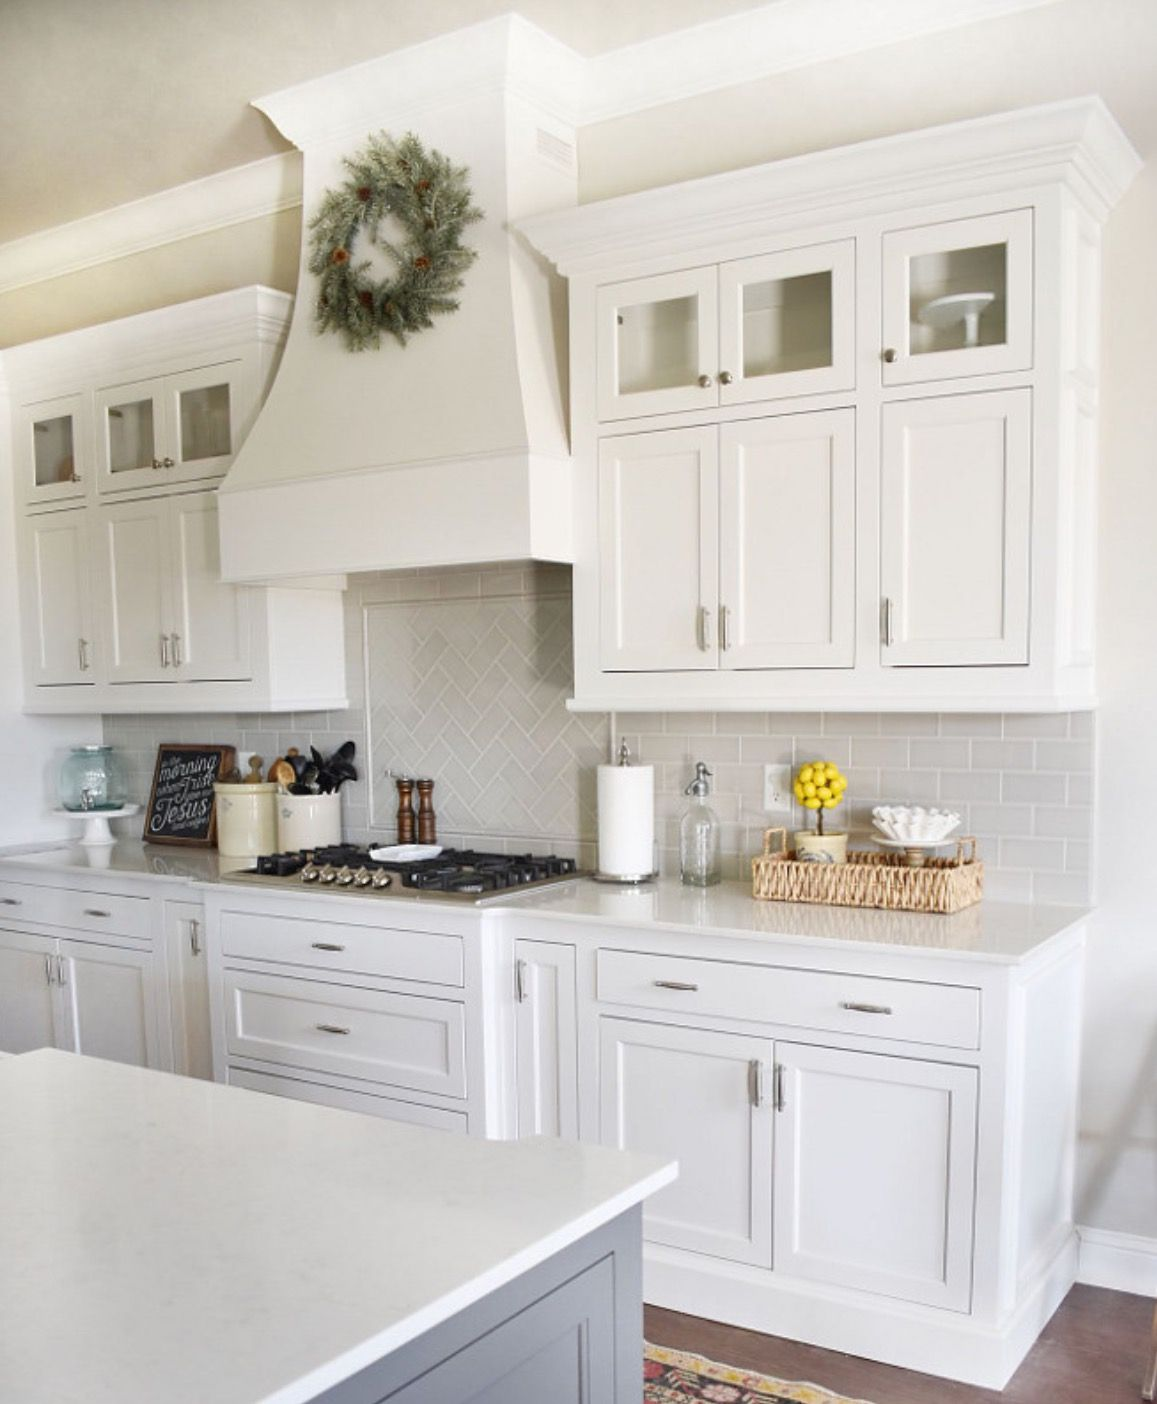 White Kitchen Shelf: White Kitchen With Glass Inserts In Upper Cabinets